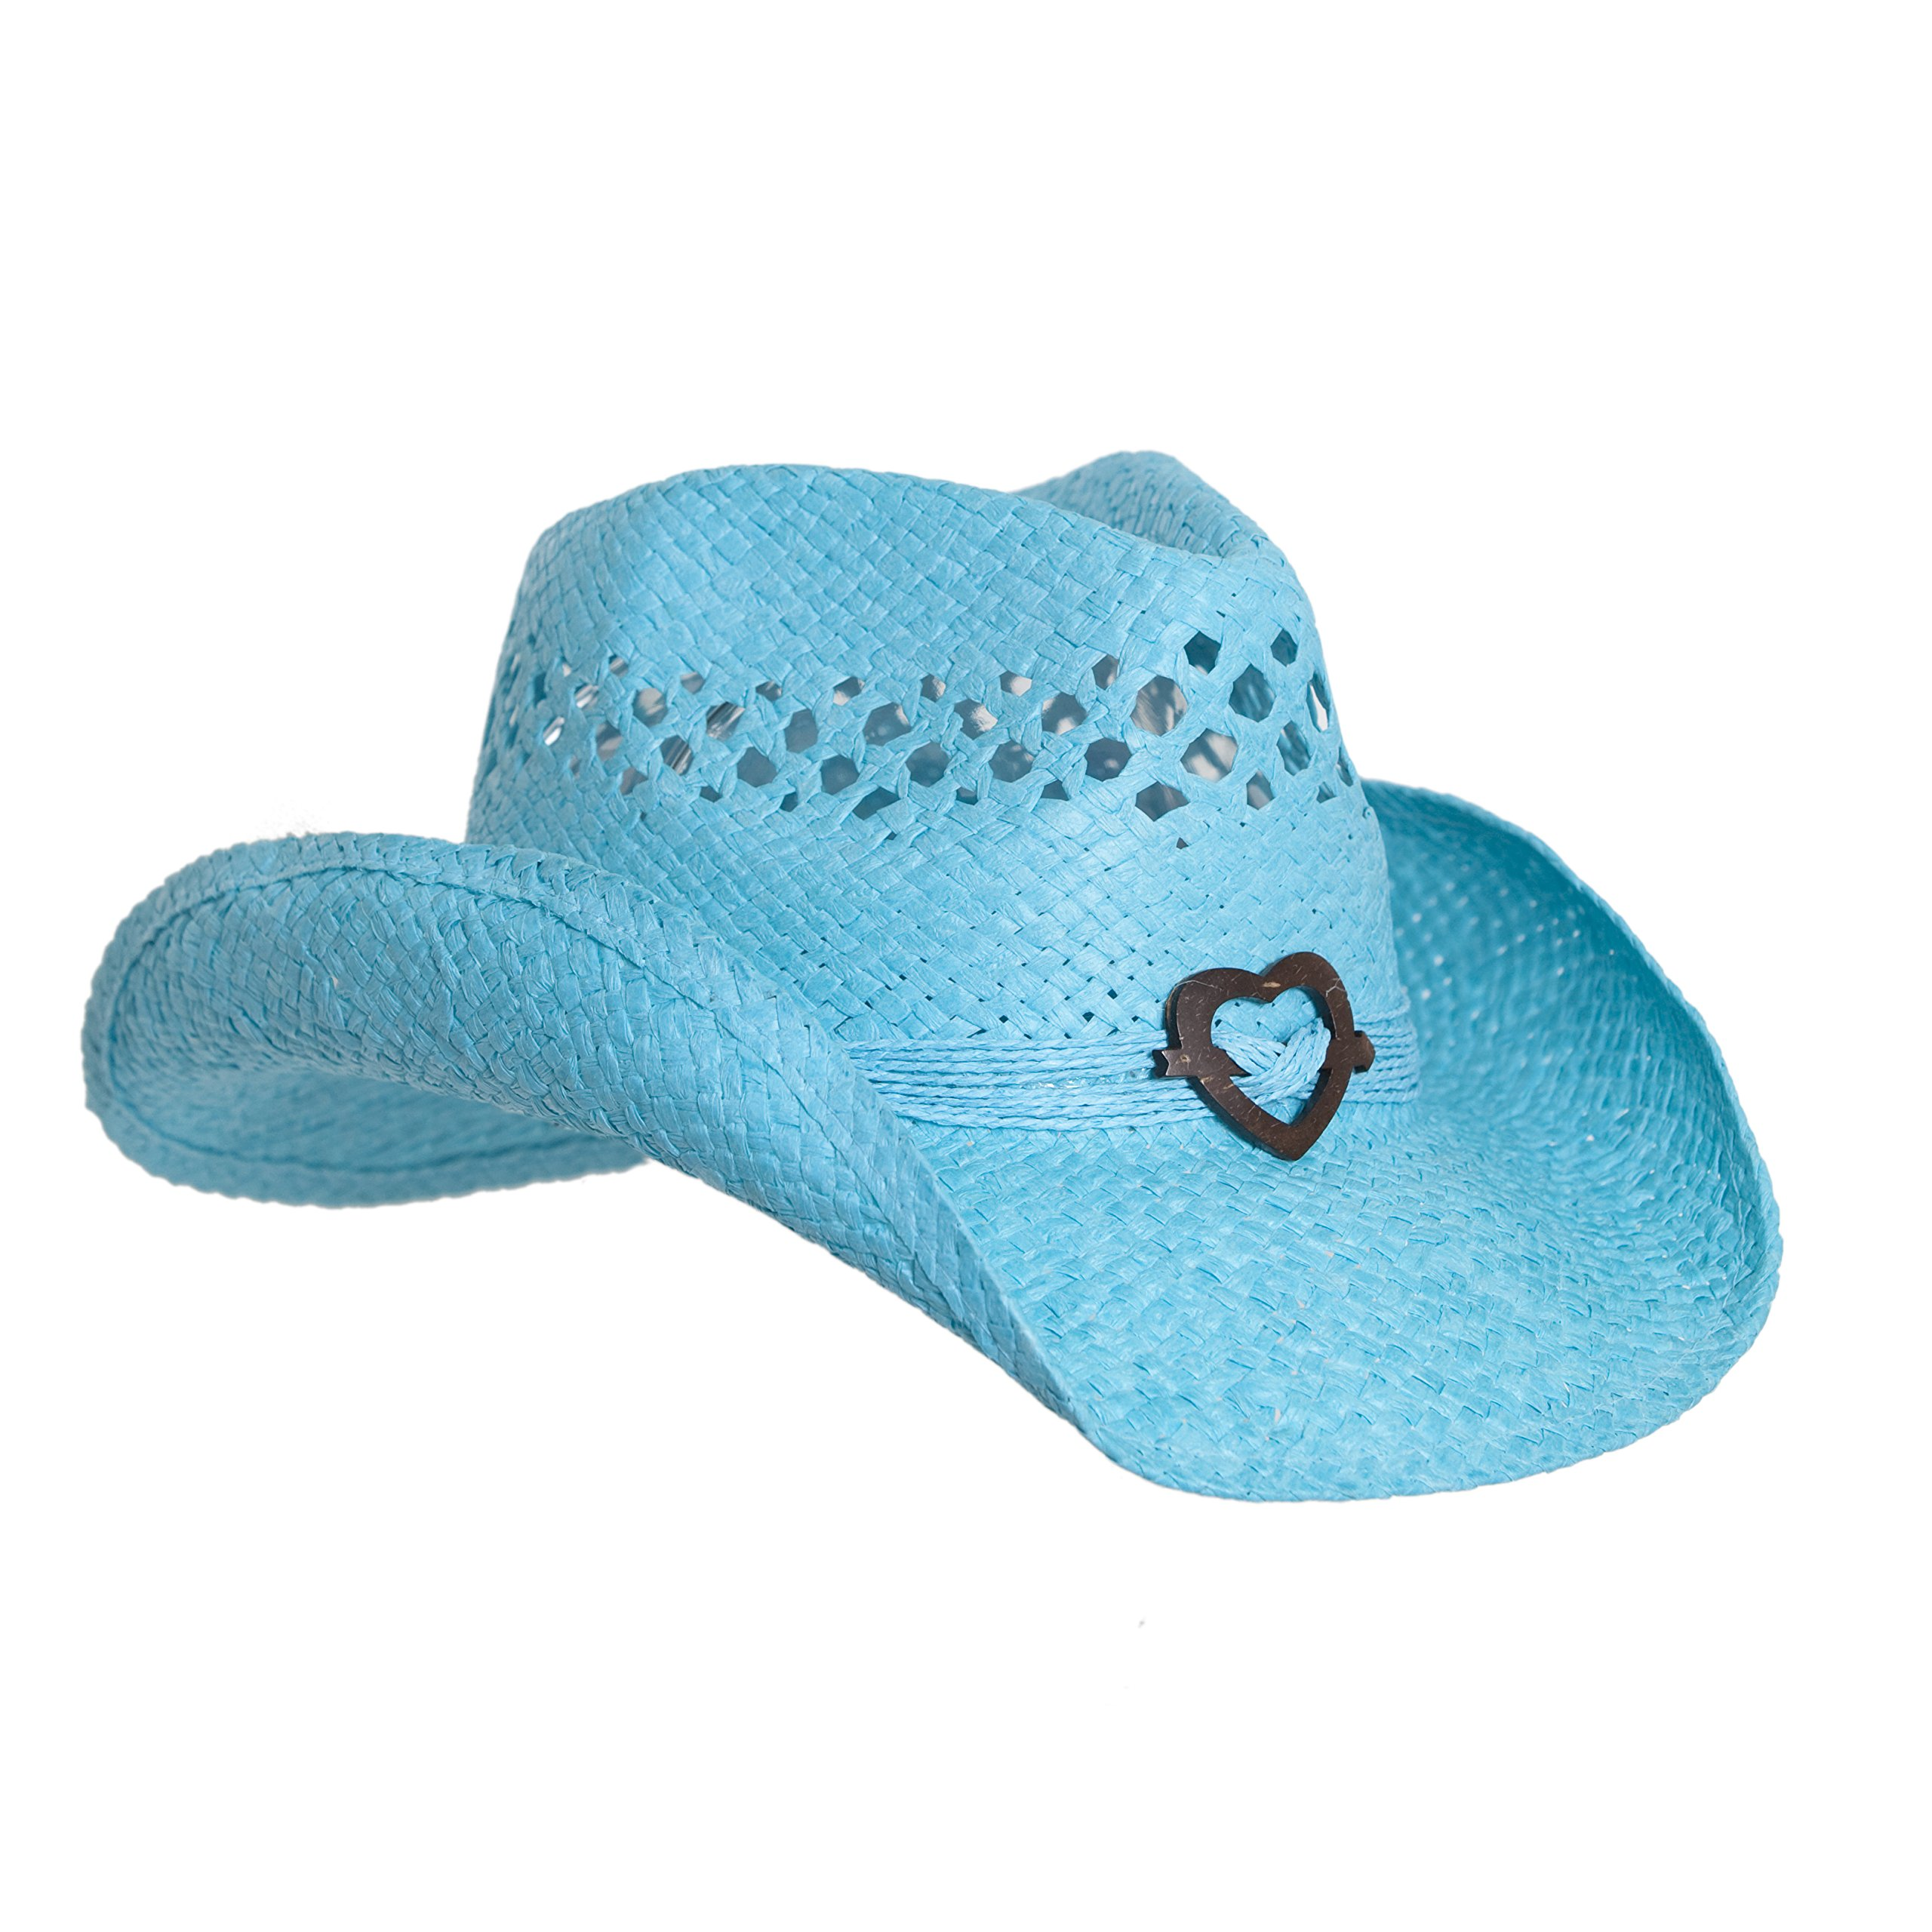 Turquoise Cute Toyo Straw Boho Cowboy Hat W/Shapeable Brim and Heart Design